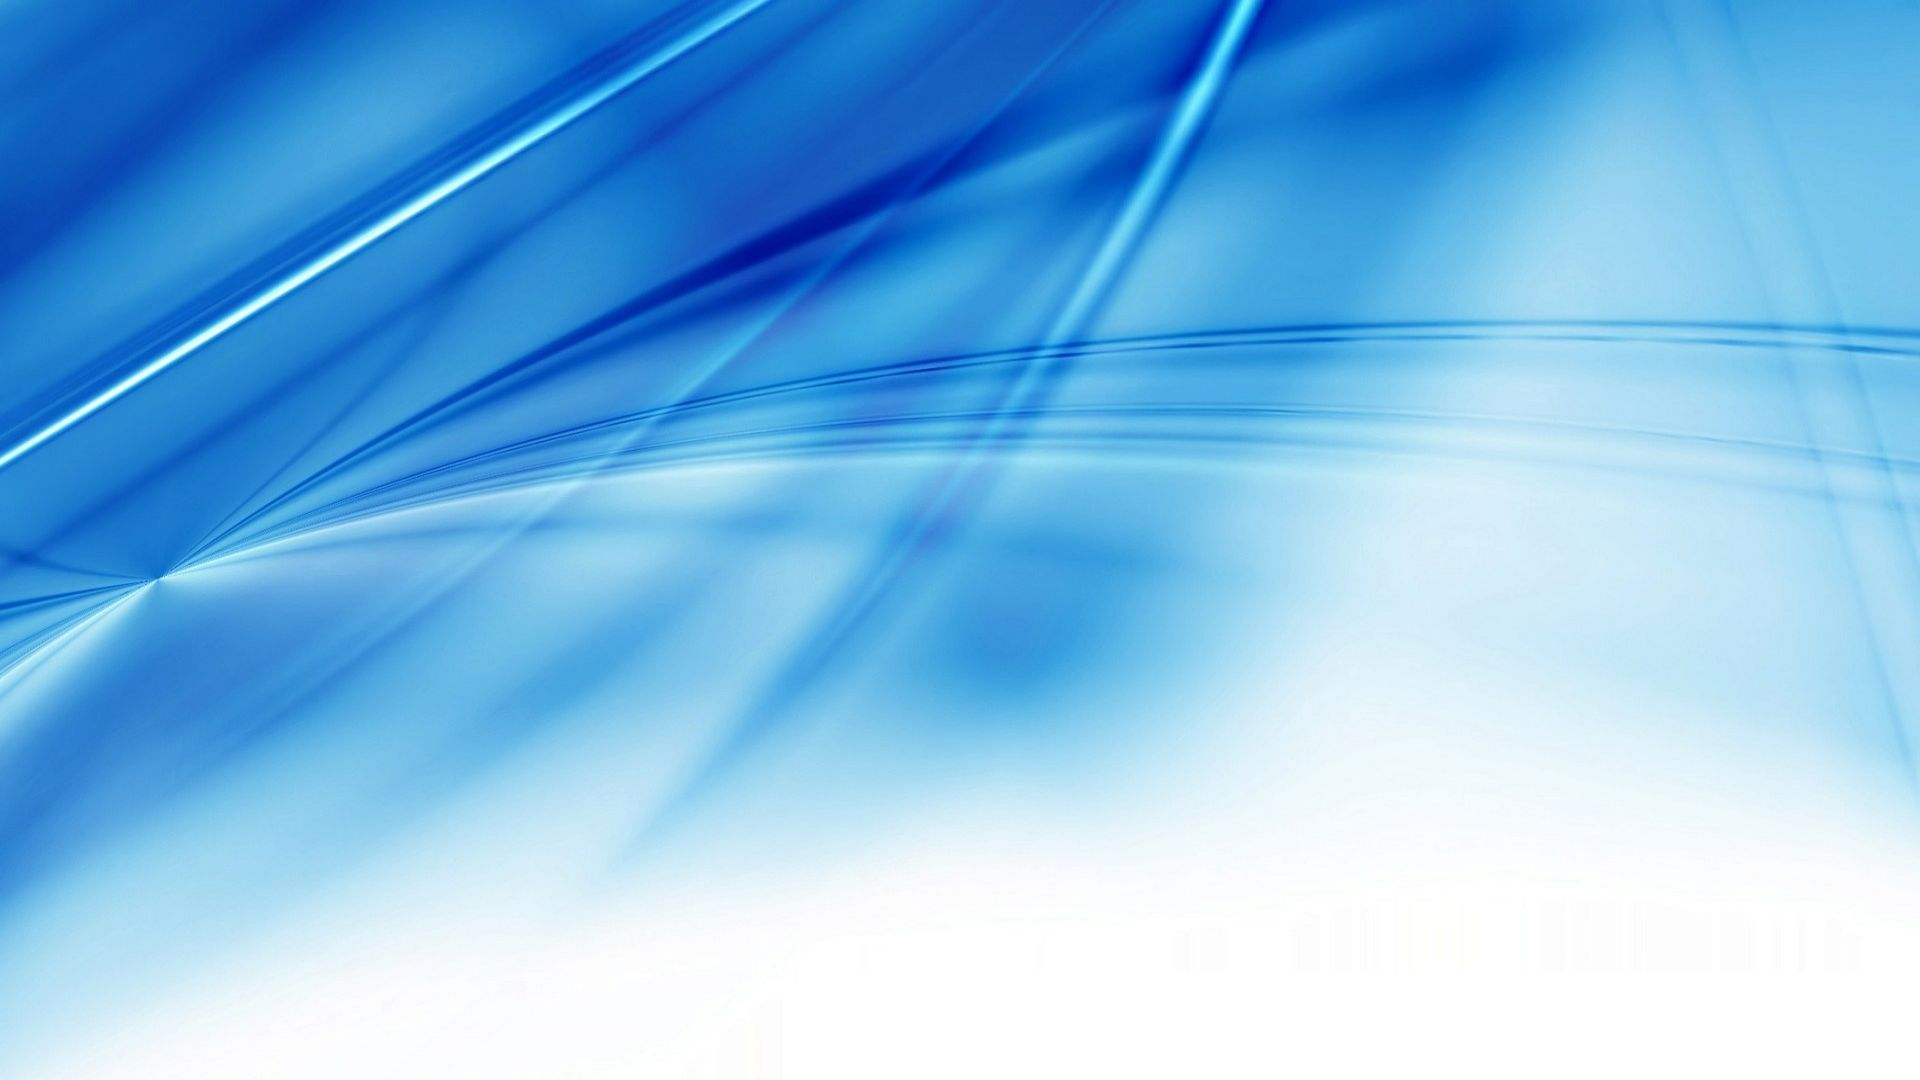 blue wallpaper 1920x1080 39980